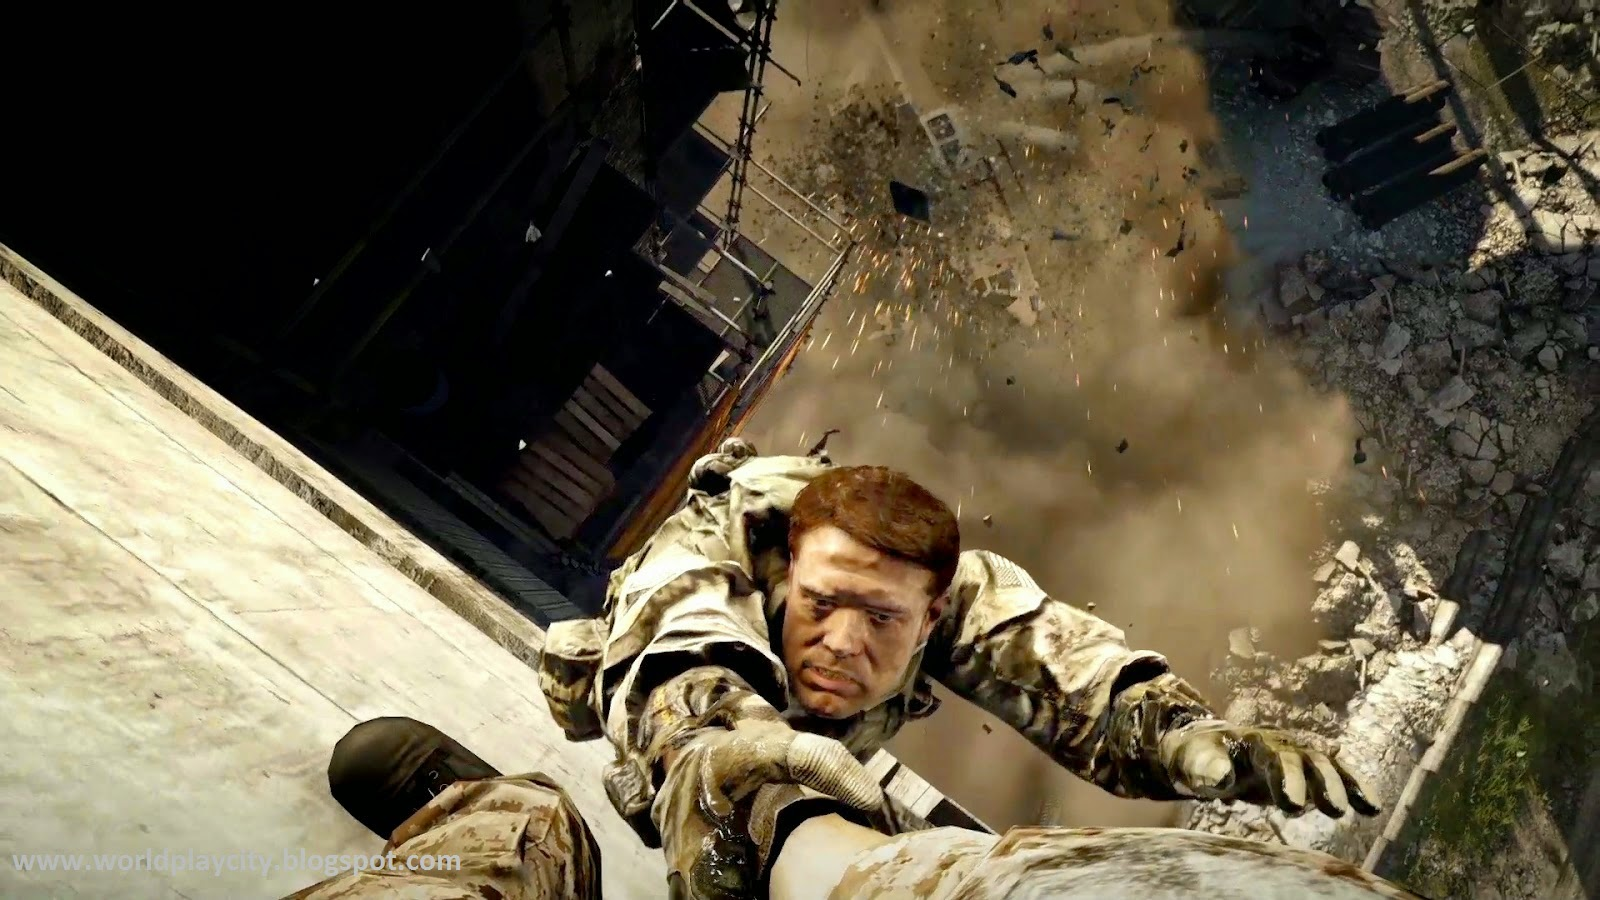 battlefield 4 direct link download free download full version pc game